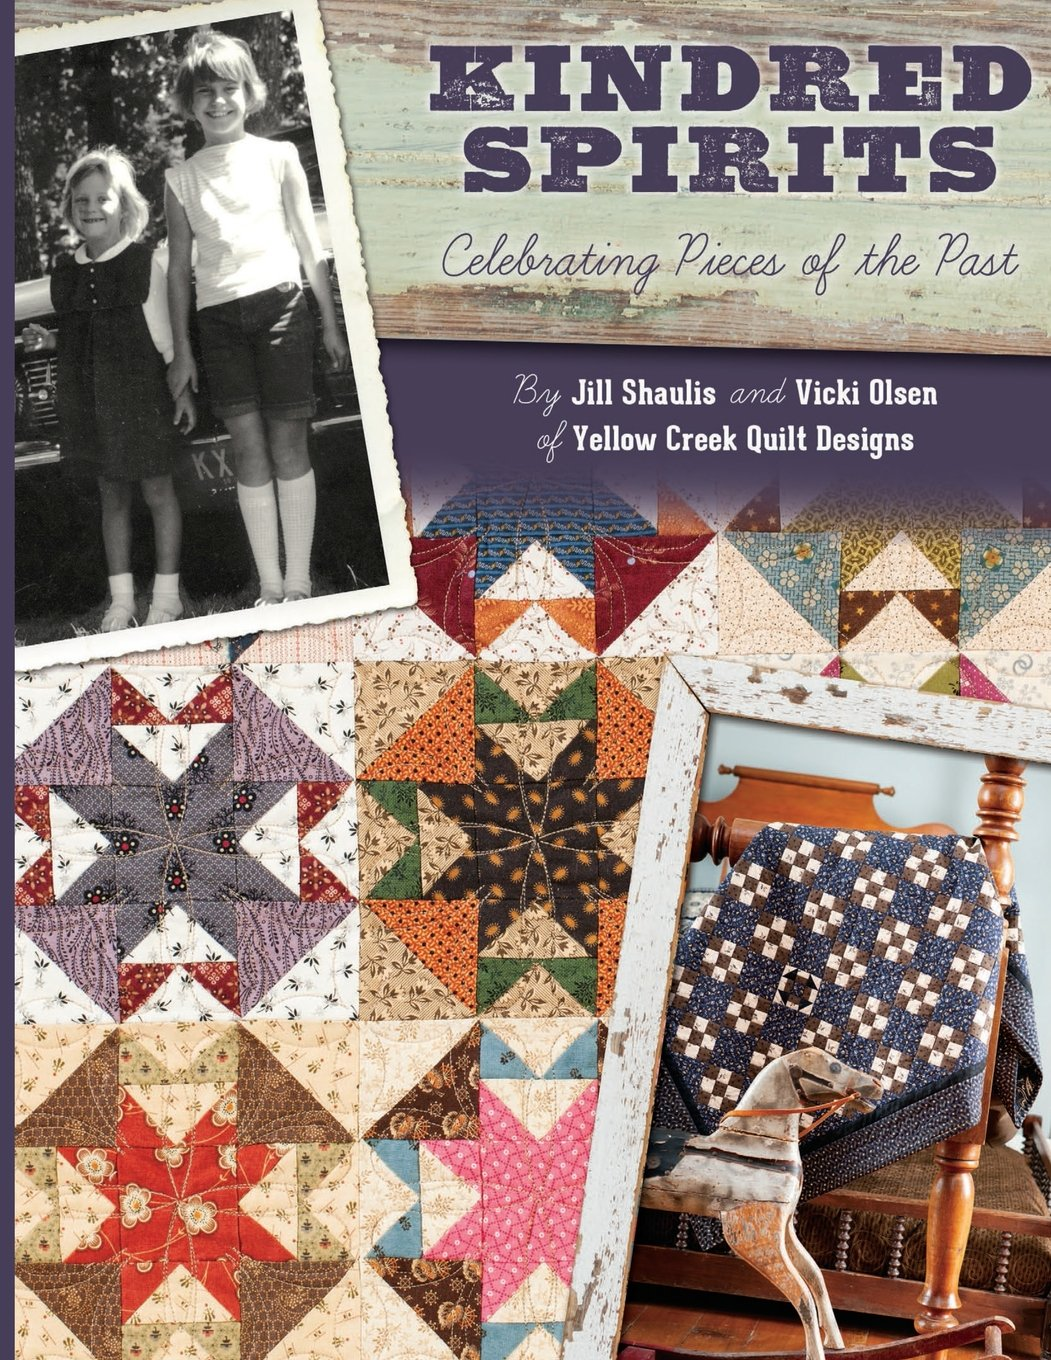 Kindred Spirits: Celebrating Pieces of the Past: Jill Shaulis ... : kindred spirits quilt shop - Adamdwight.com